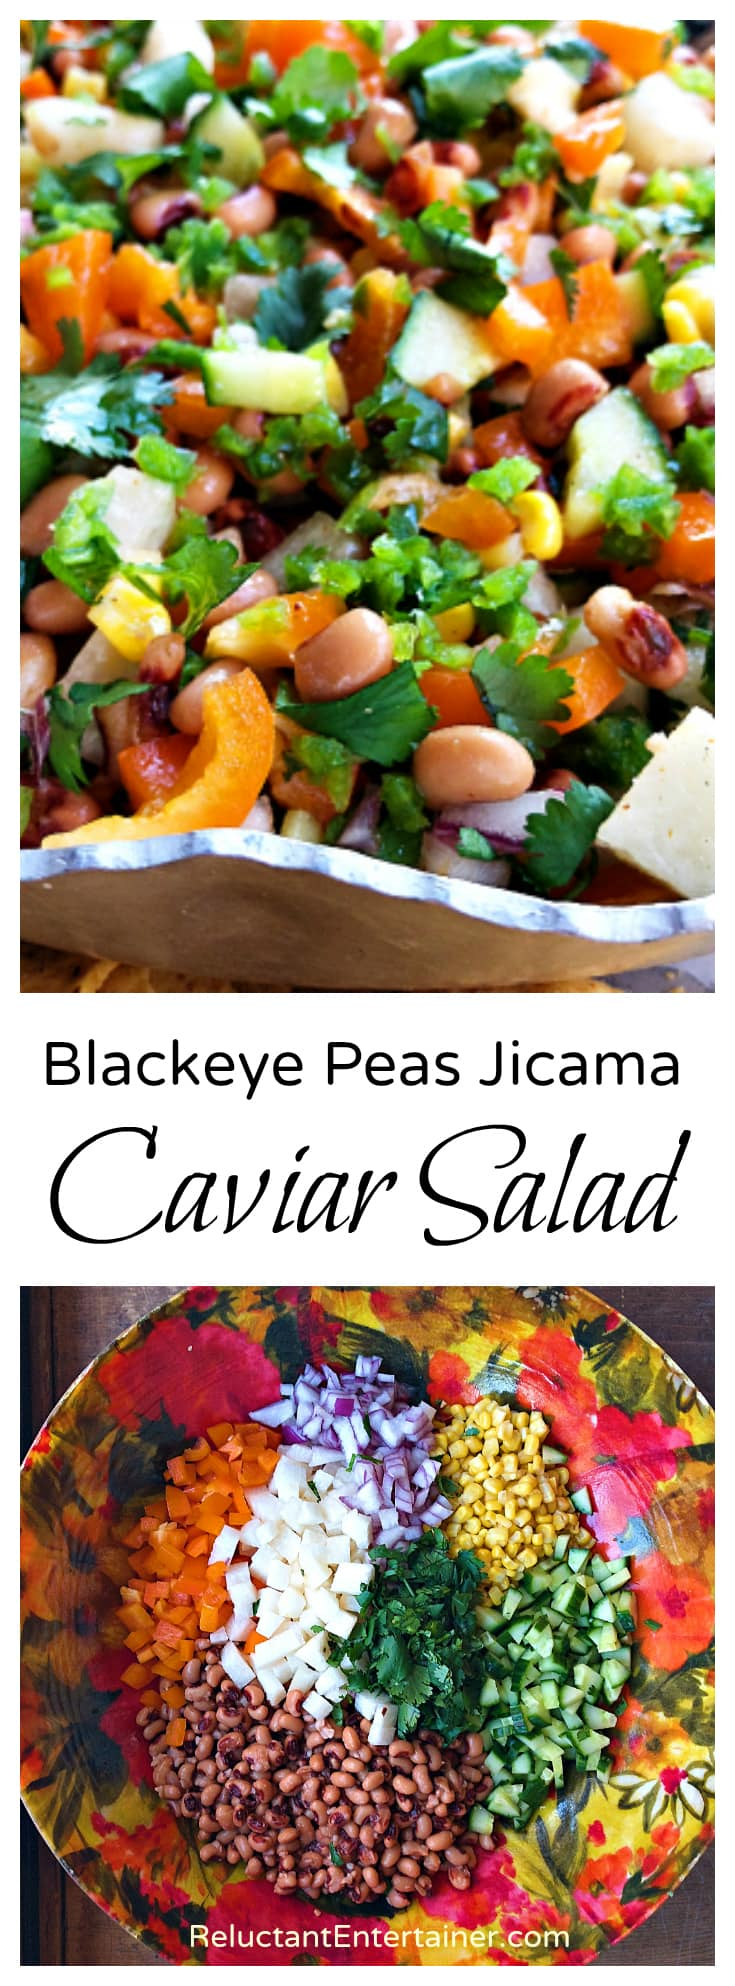 Blackeye Peas Jicama Caviar Salad Recipe